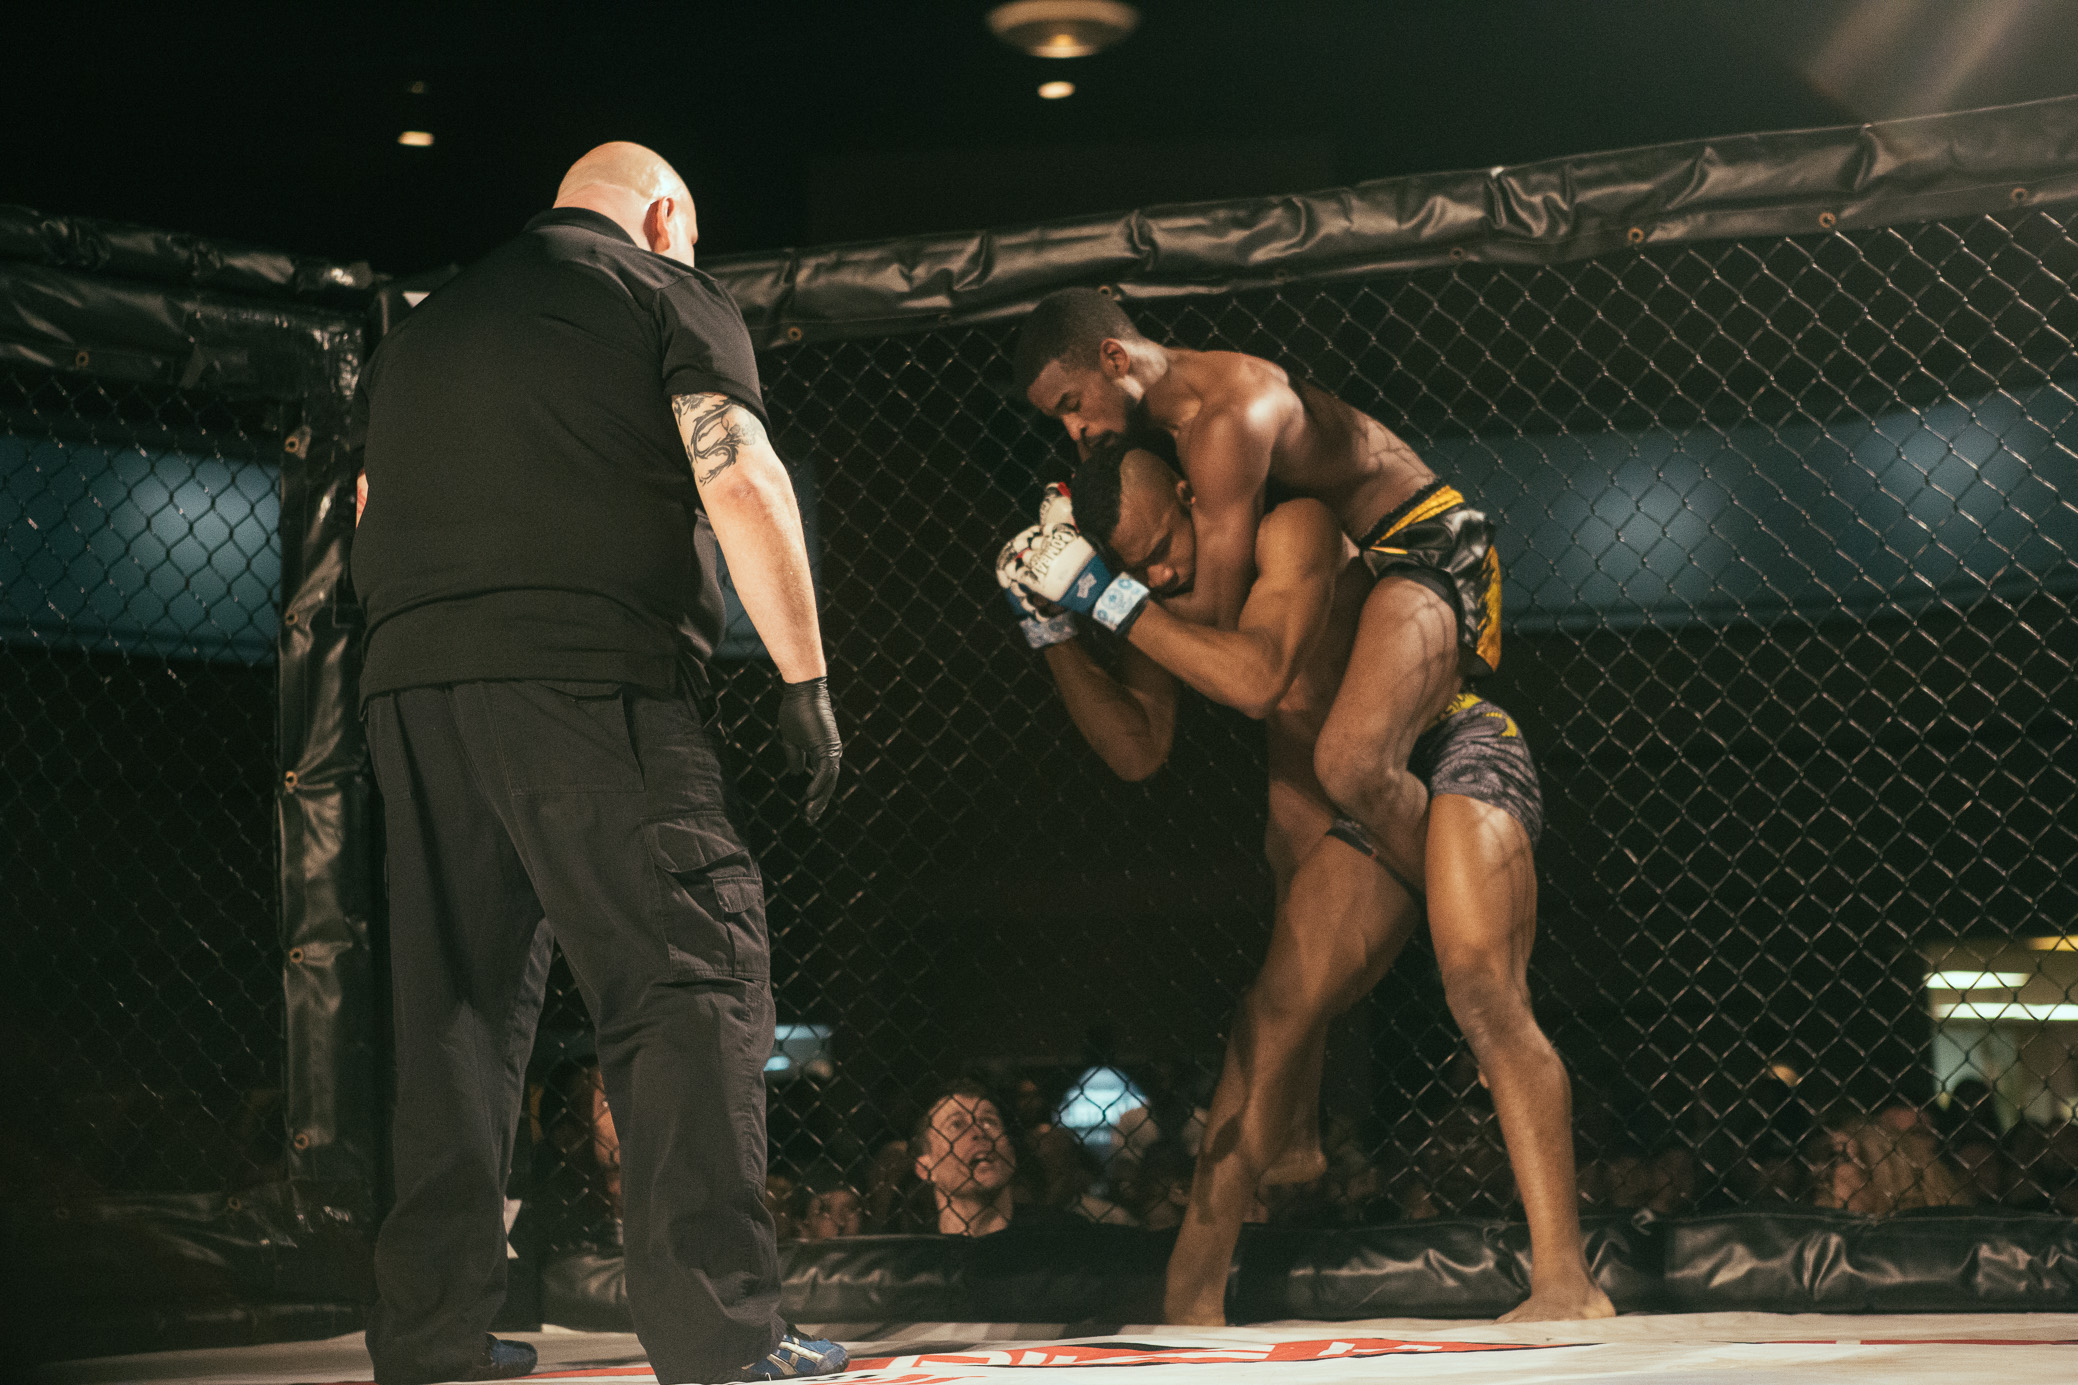 Strikehard 51 mixed martial arts took place at the Zamora Shrine Center in the Irondale area of Birmingham, Alabama on January 12th, 2019. (Photo by David A. Smith / DSmithScenes)